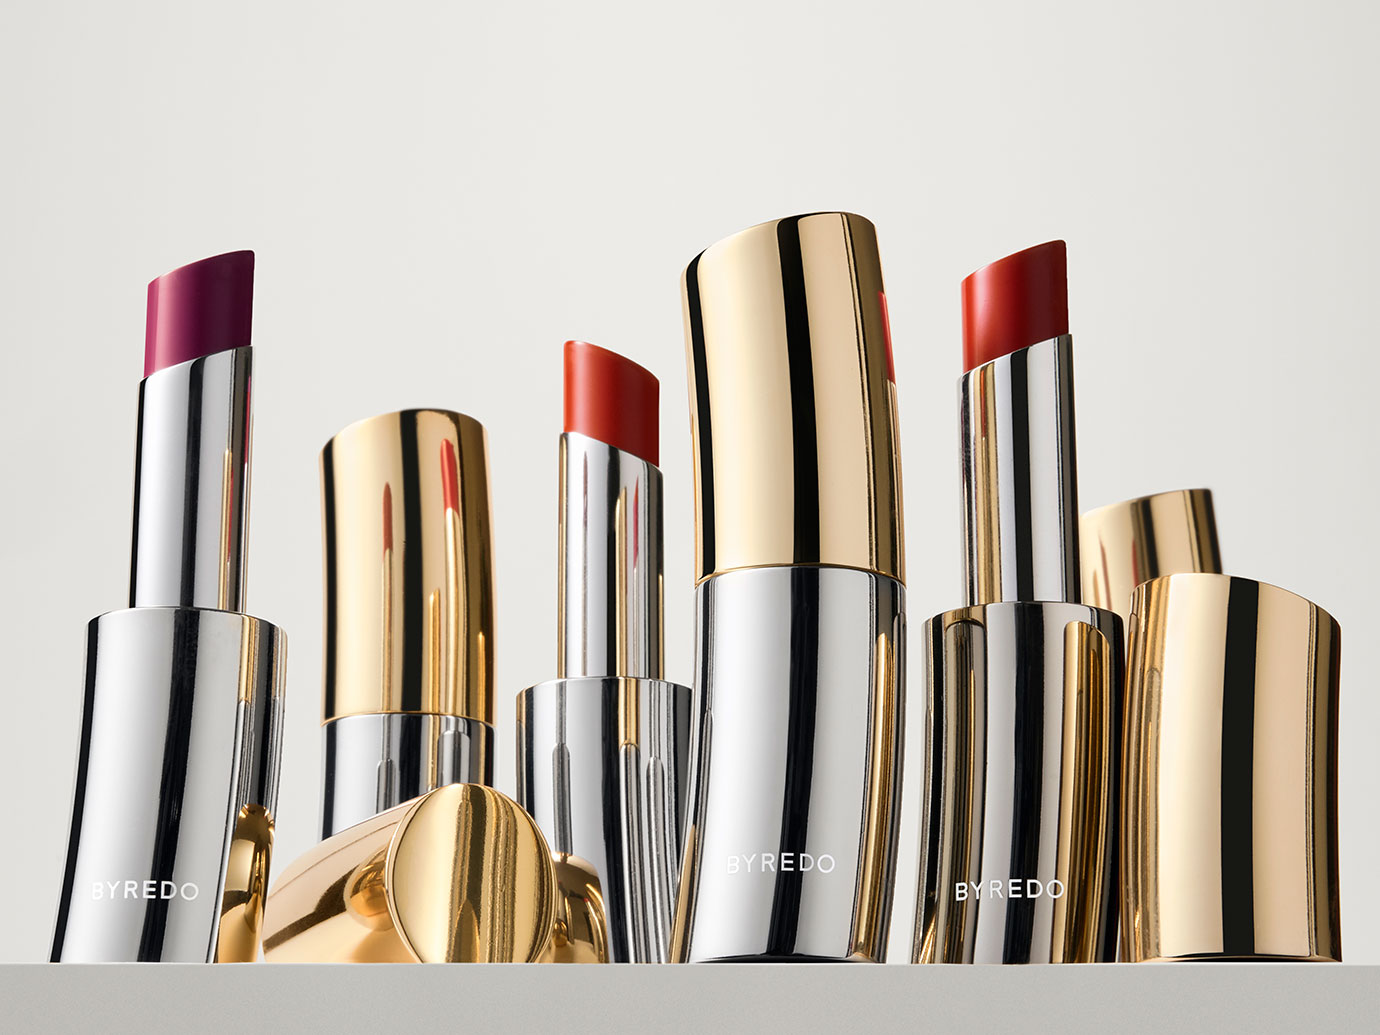 BYREDO Lipstick, available in 15 shades.